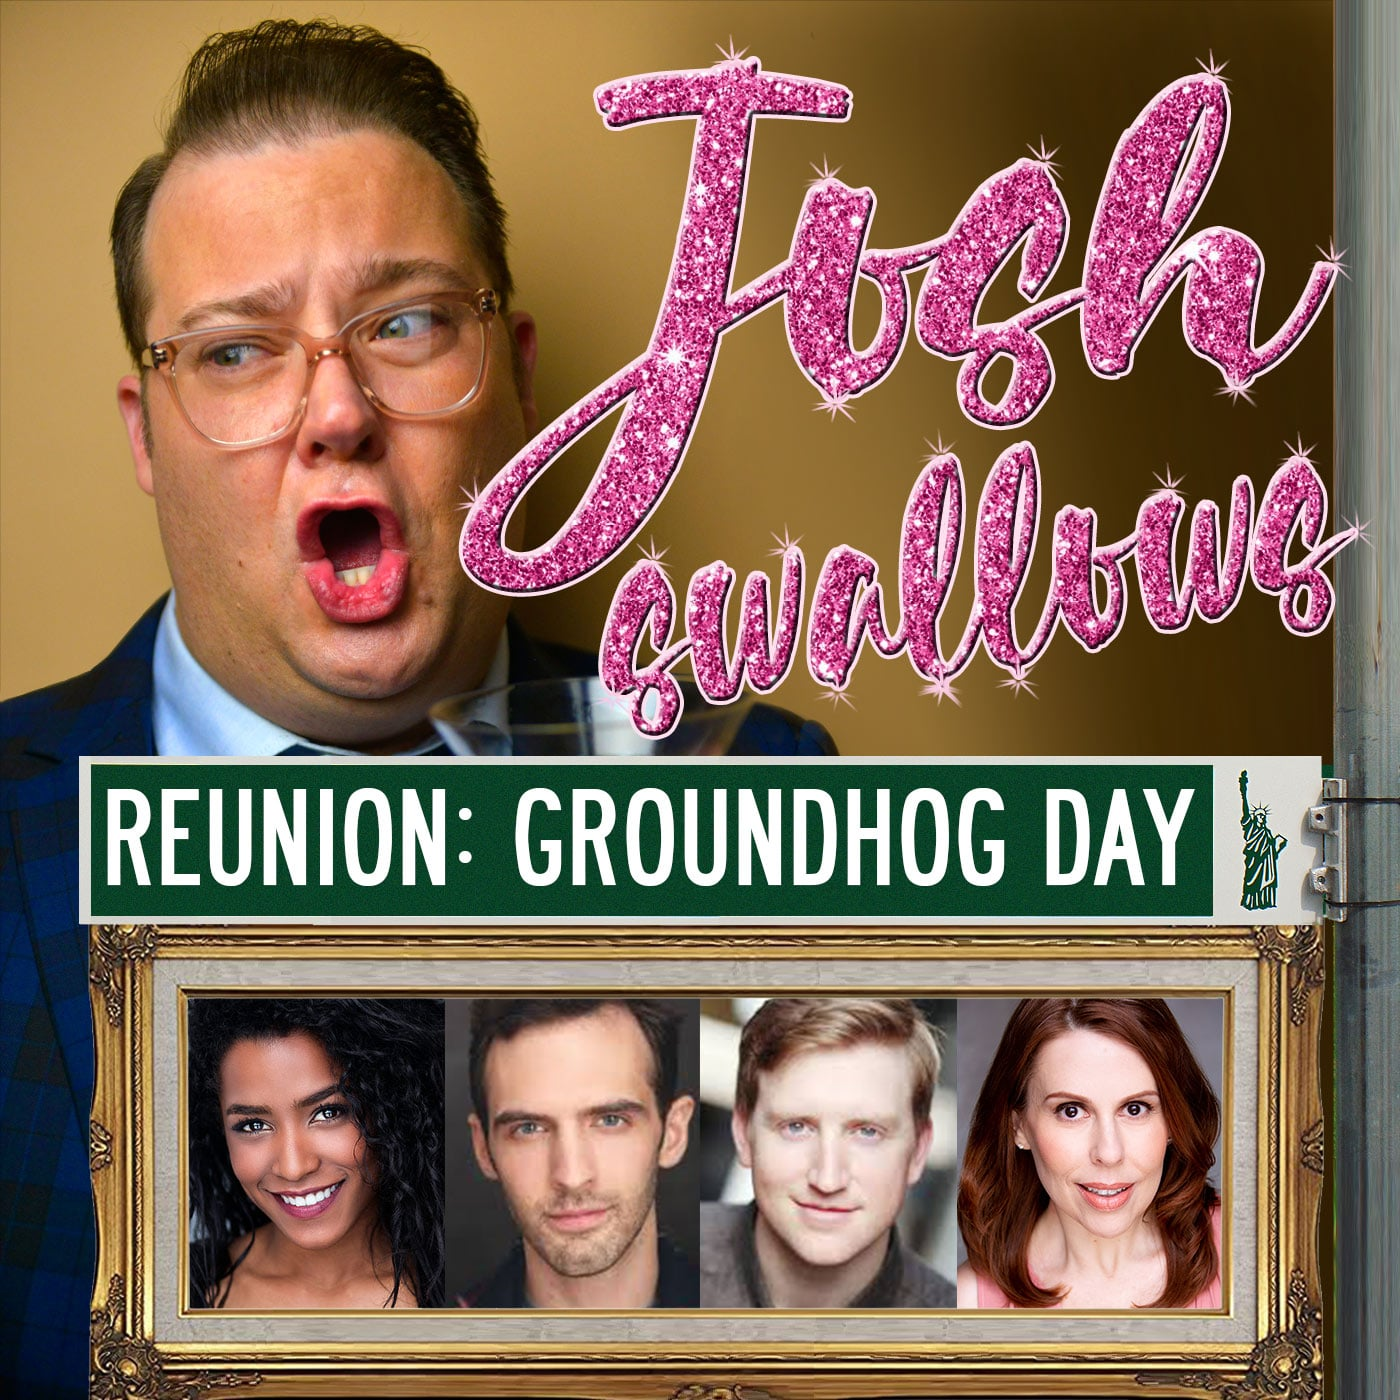 Josh Swallows Broadway Ep21 - Groundhog Day reunion with Taylor Iman Jones, Joseph Medeiros, Tari Kelly, and Travis Waldschmidt